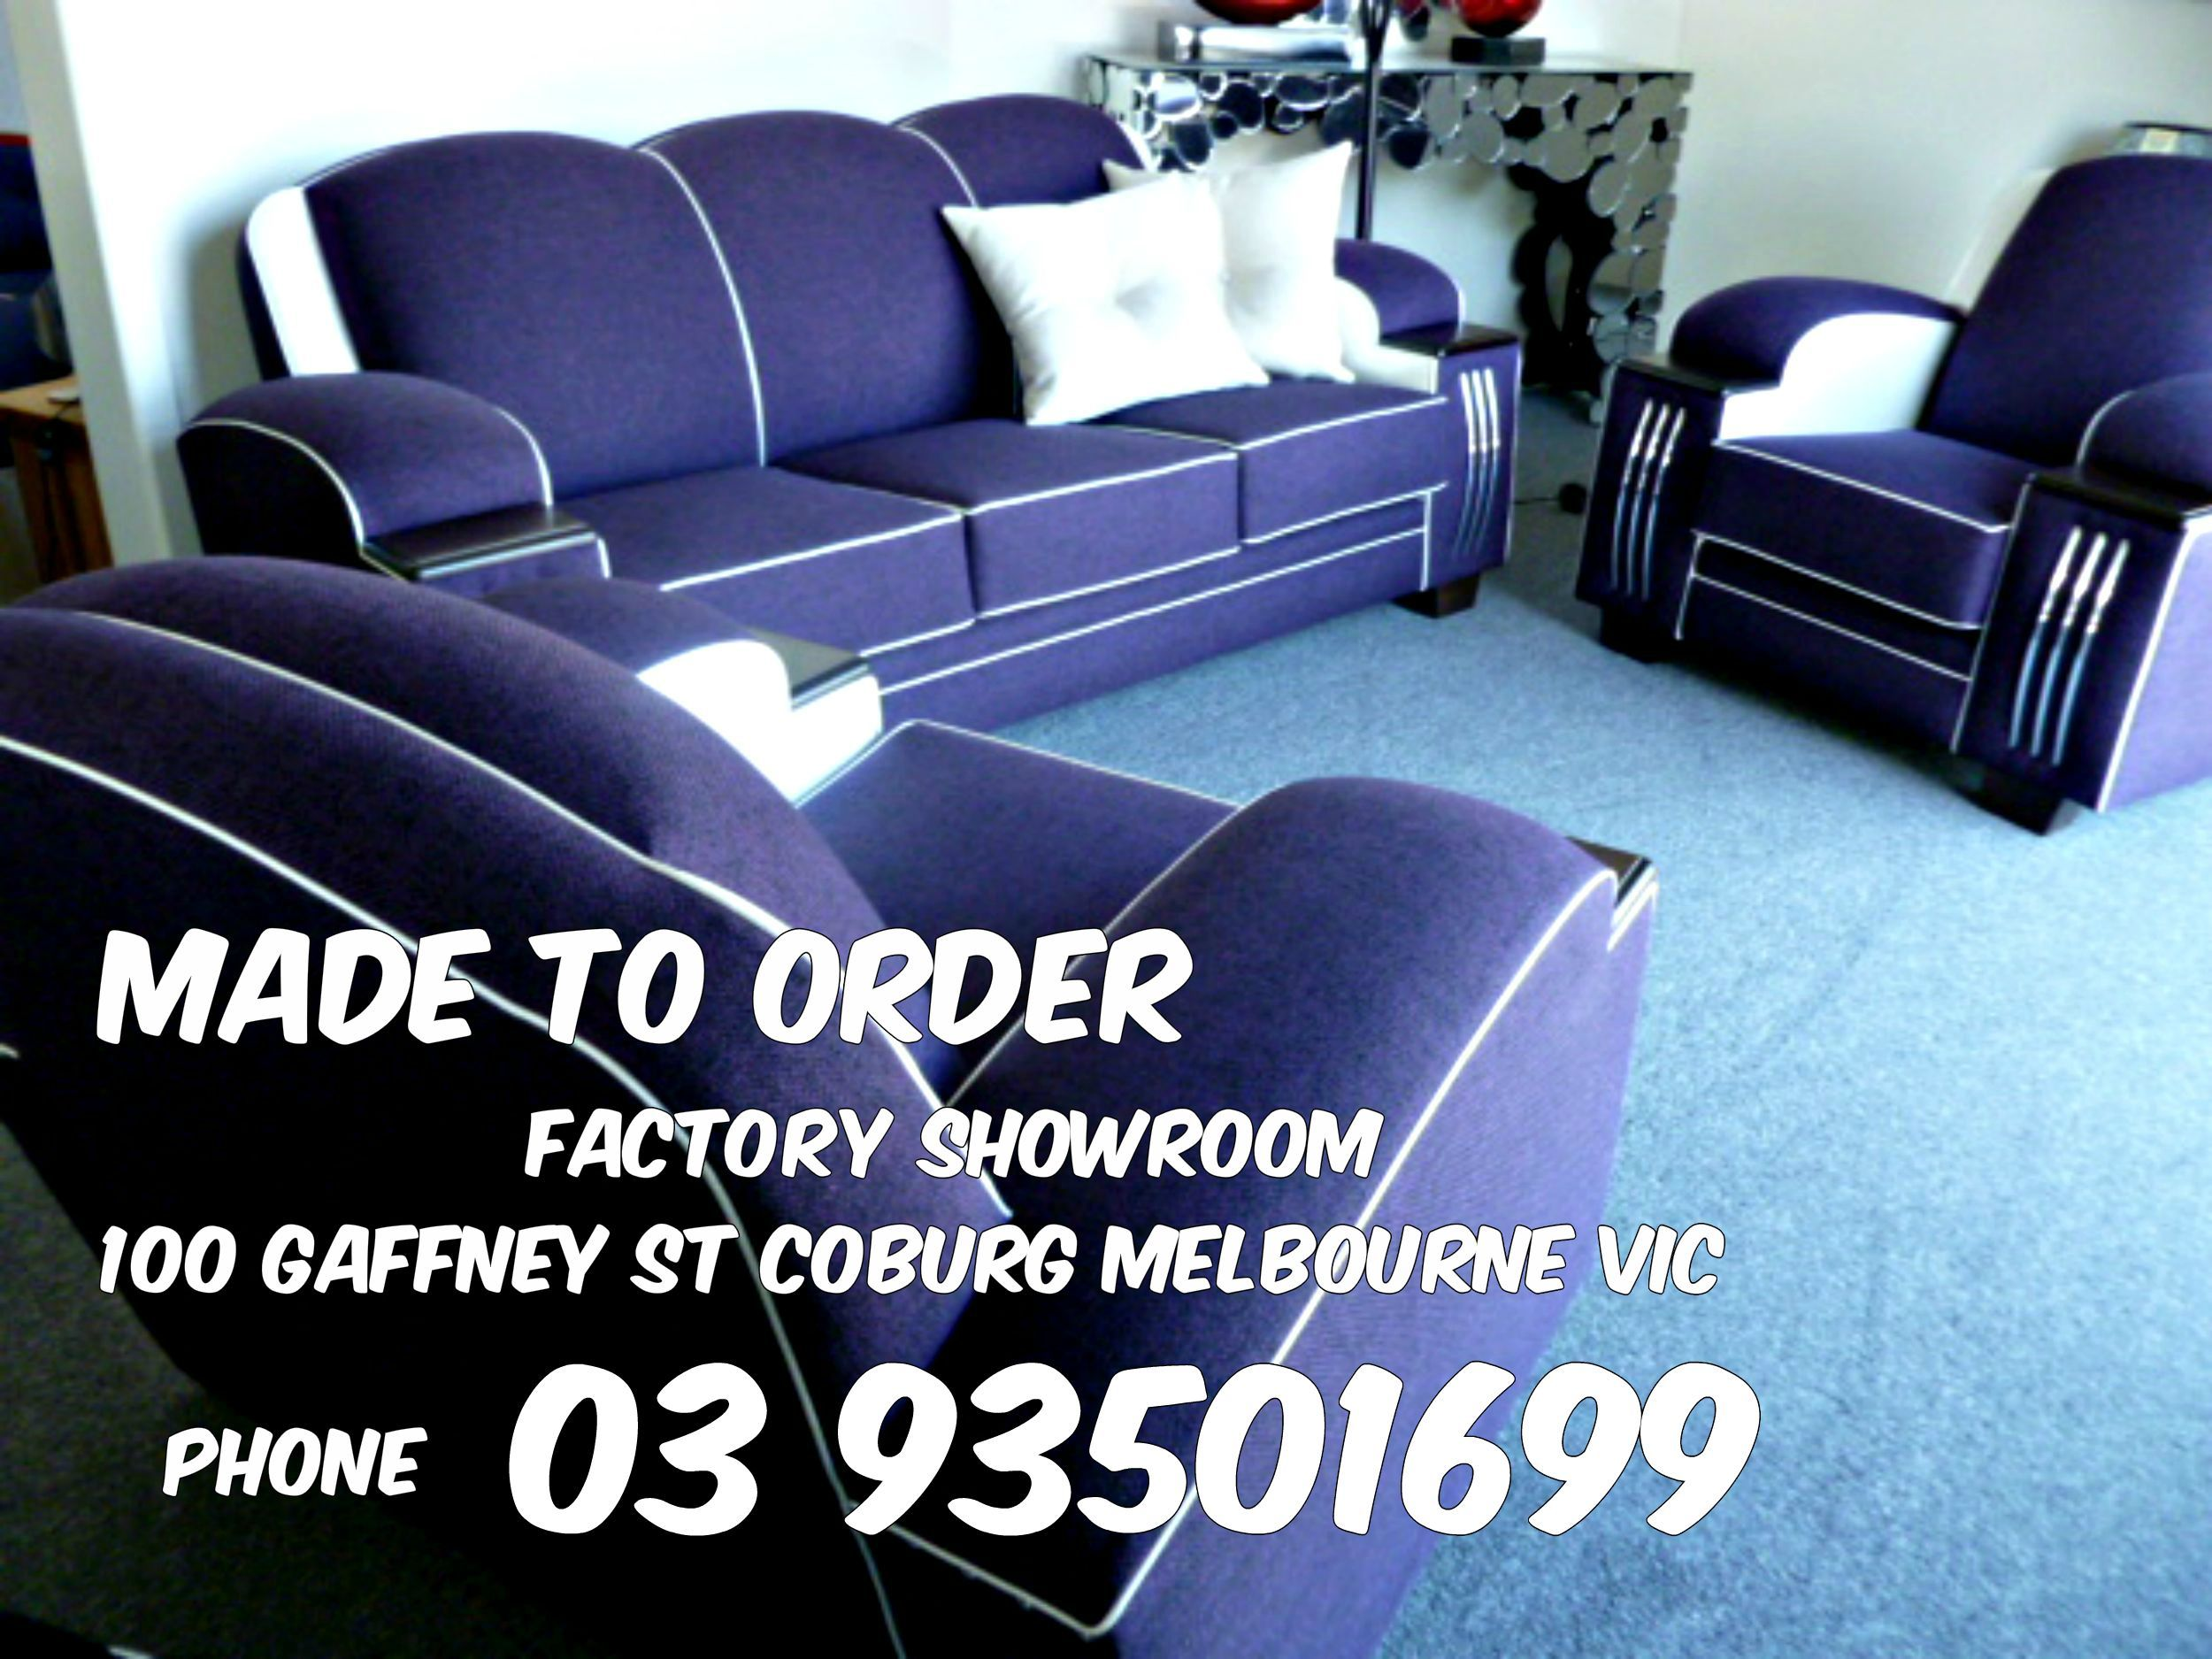 DecoFurniture lounge suites for sale